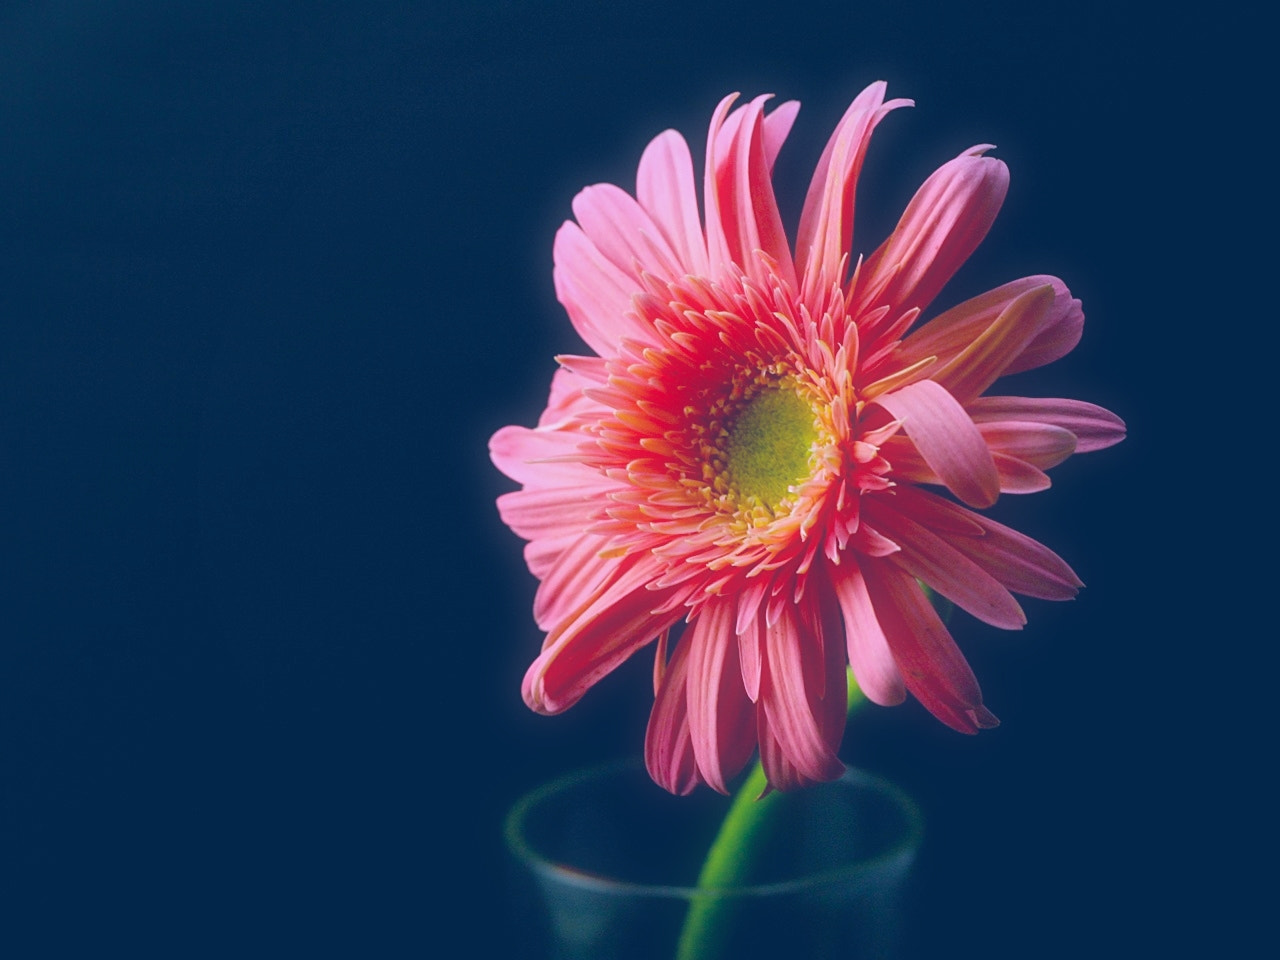 Photograph Pastel Pink by Vey Telmo on 500px